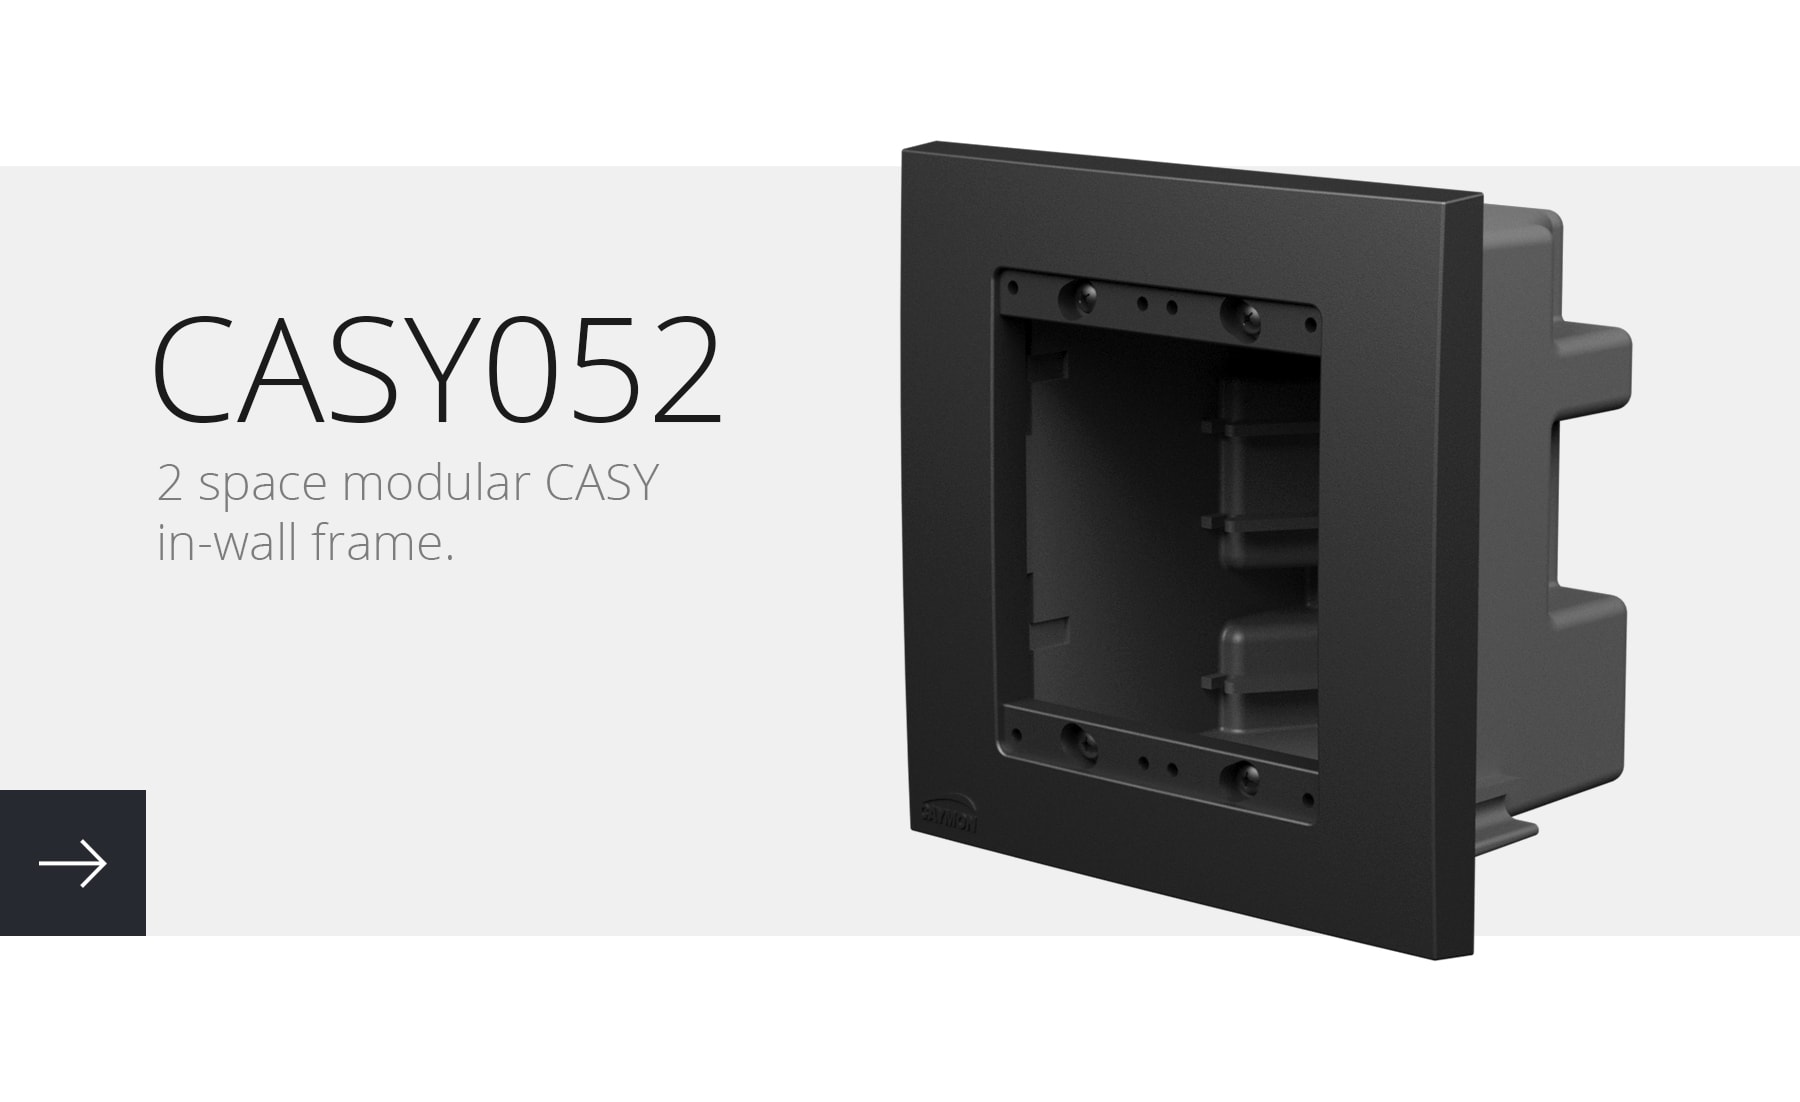 2 space modular CASY in-wall frame